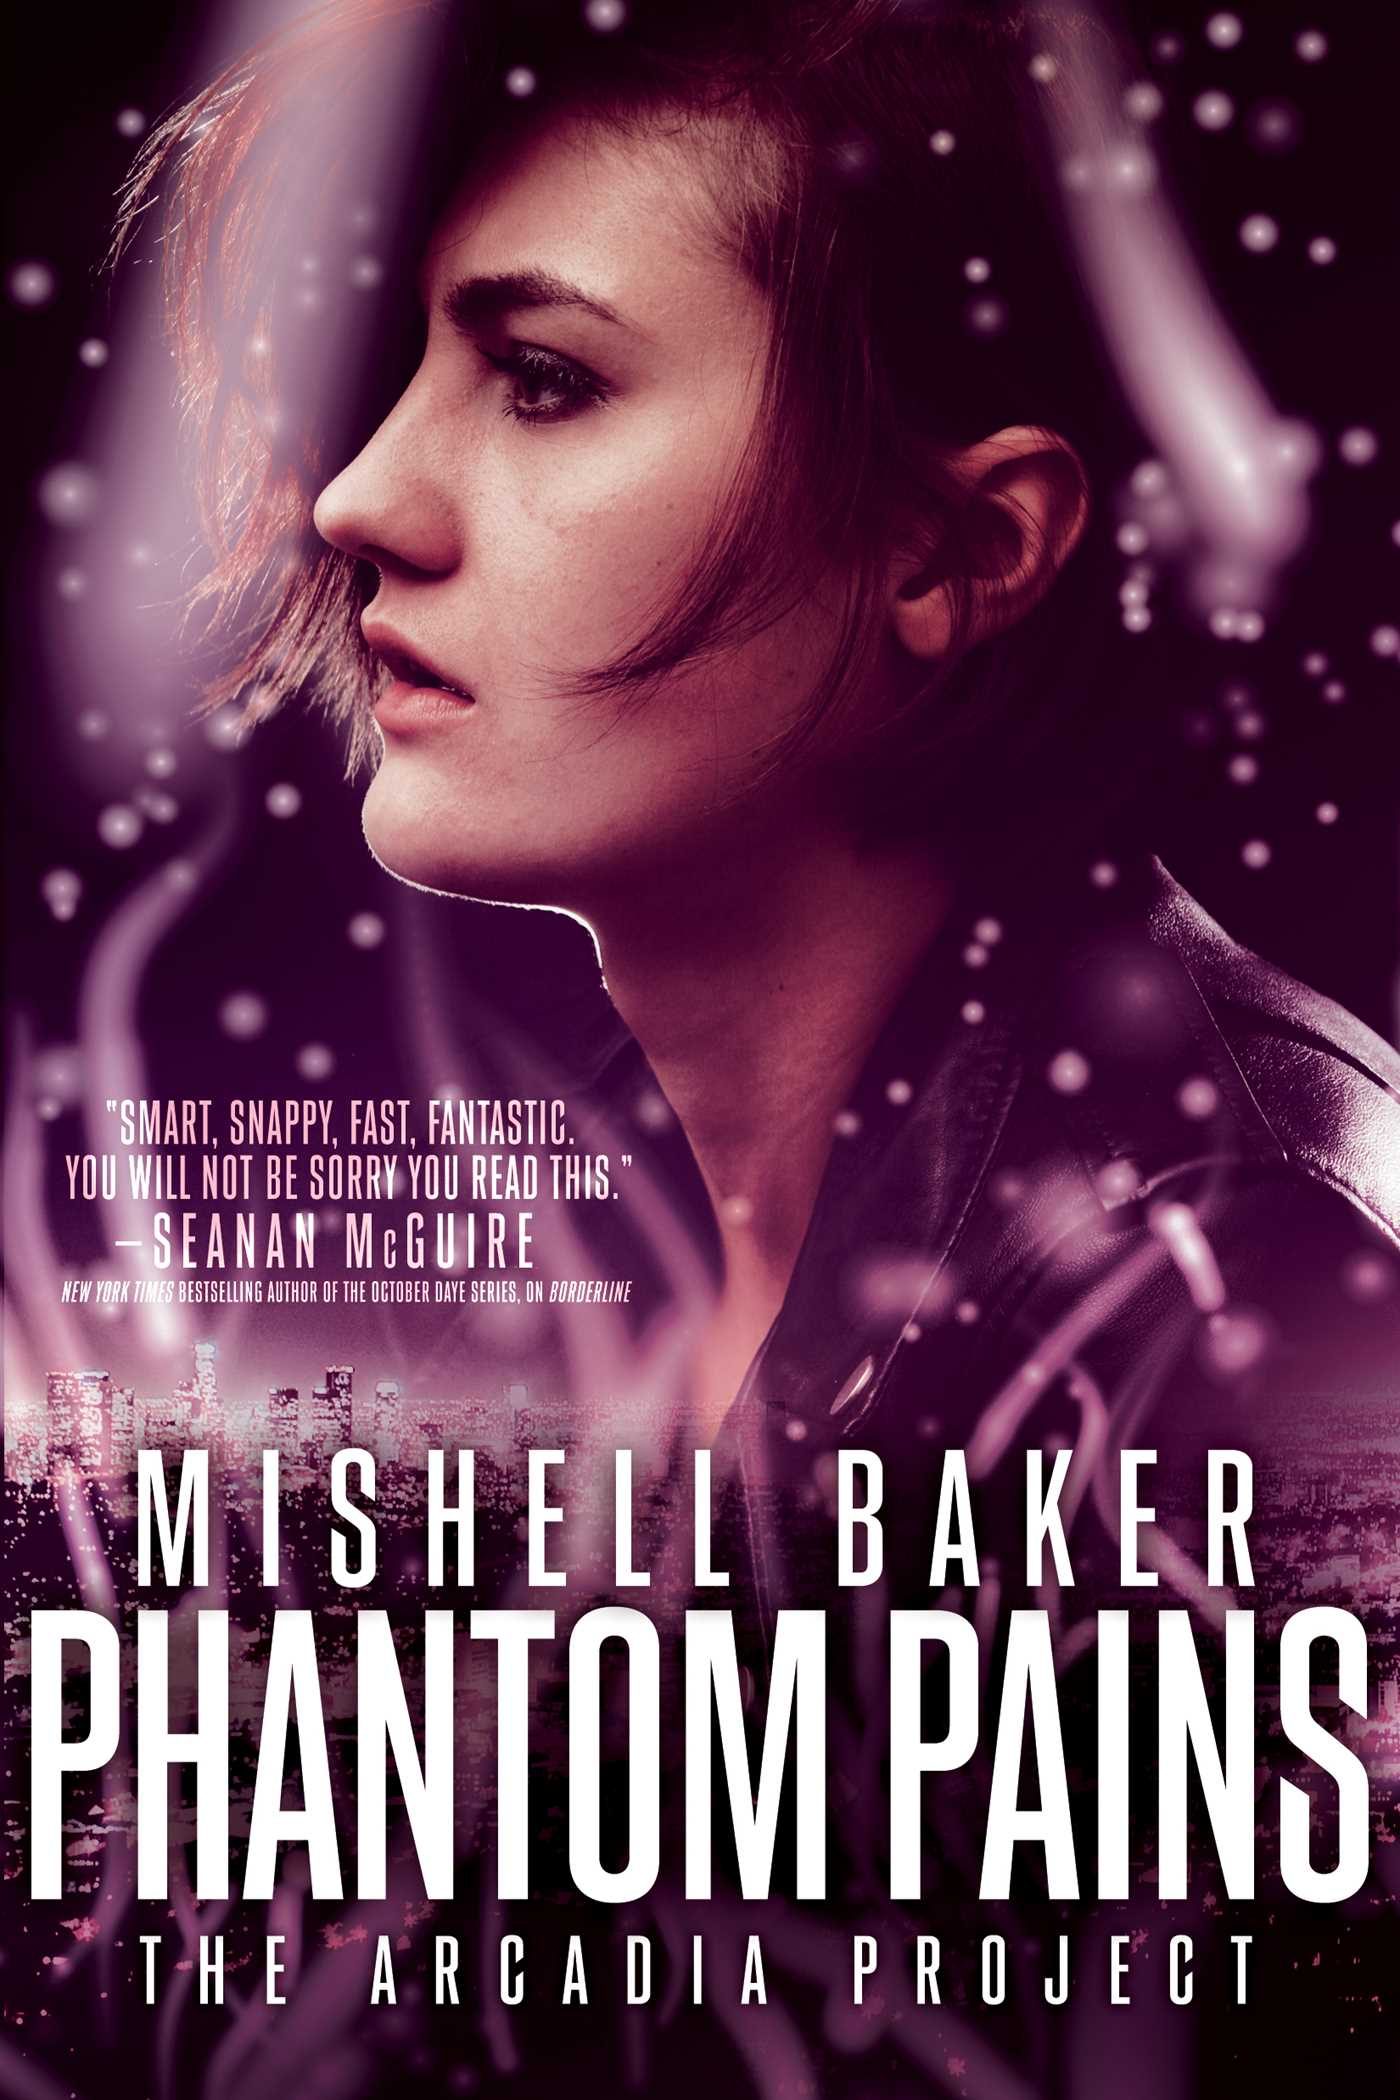 Phantom pains 9781481451932 hr